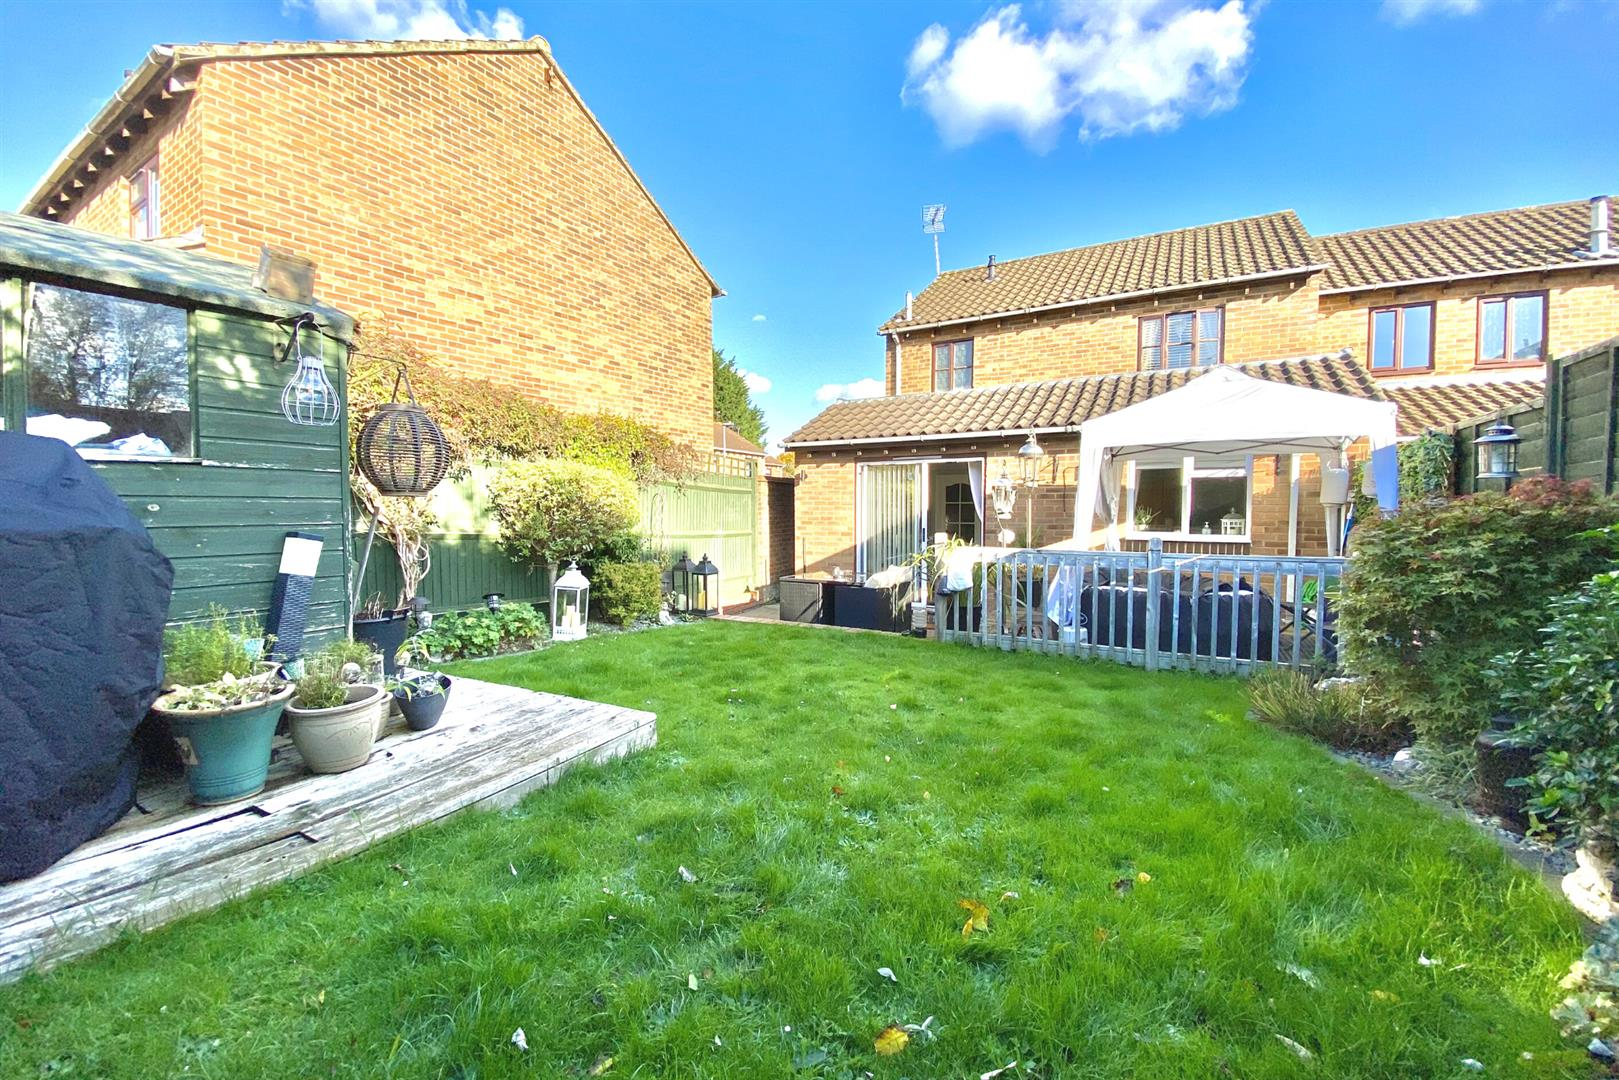 3 bed end of terrace for sale in Lower Earley 11